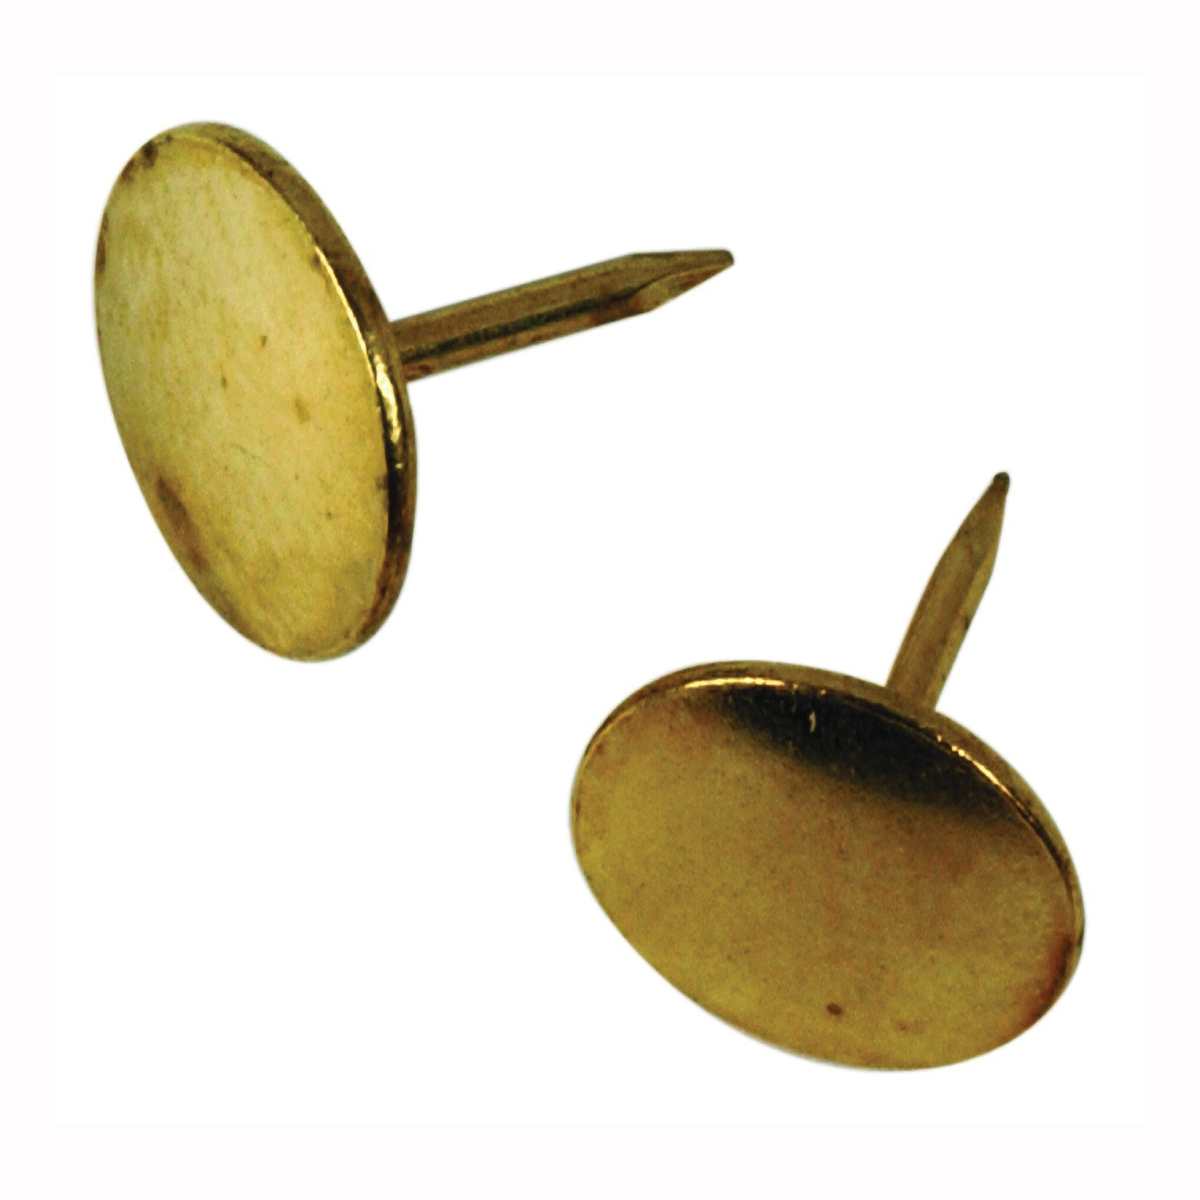 Picture of HILLMAN 122672 Thumb Tack, 15/64 in Shank, Steel, Brass, Cap Head, Sharp Point, Snap-Pak